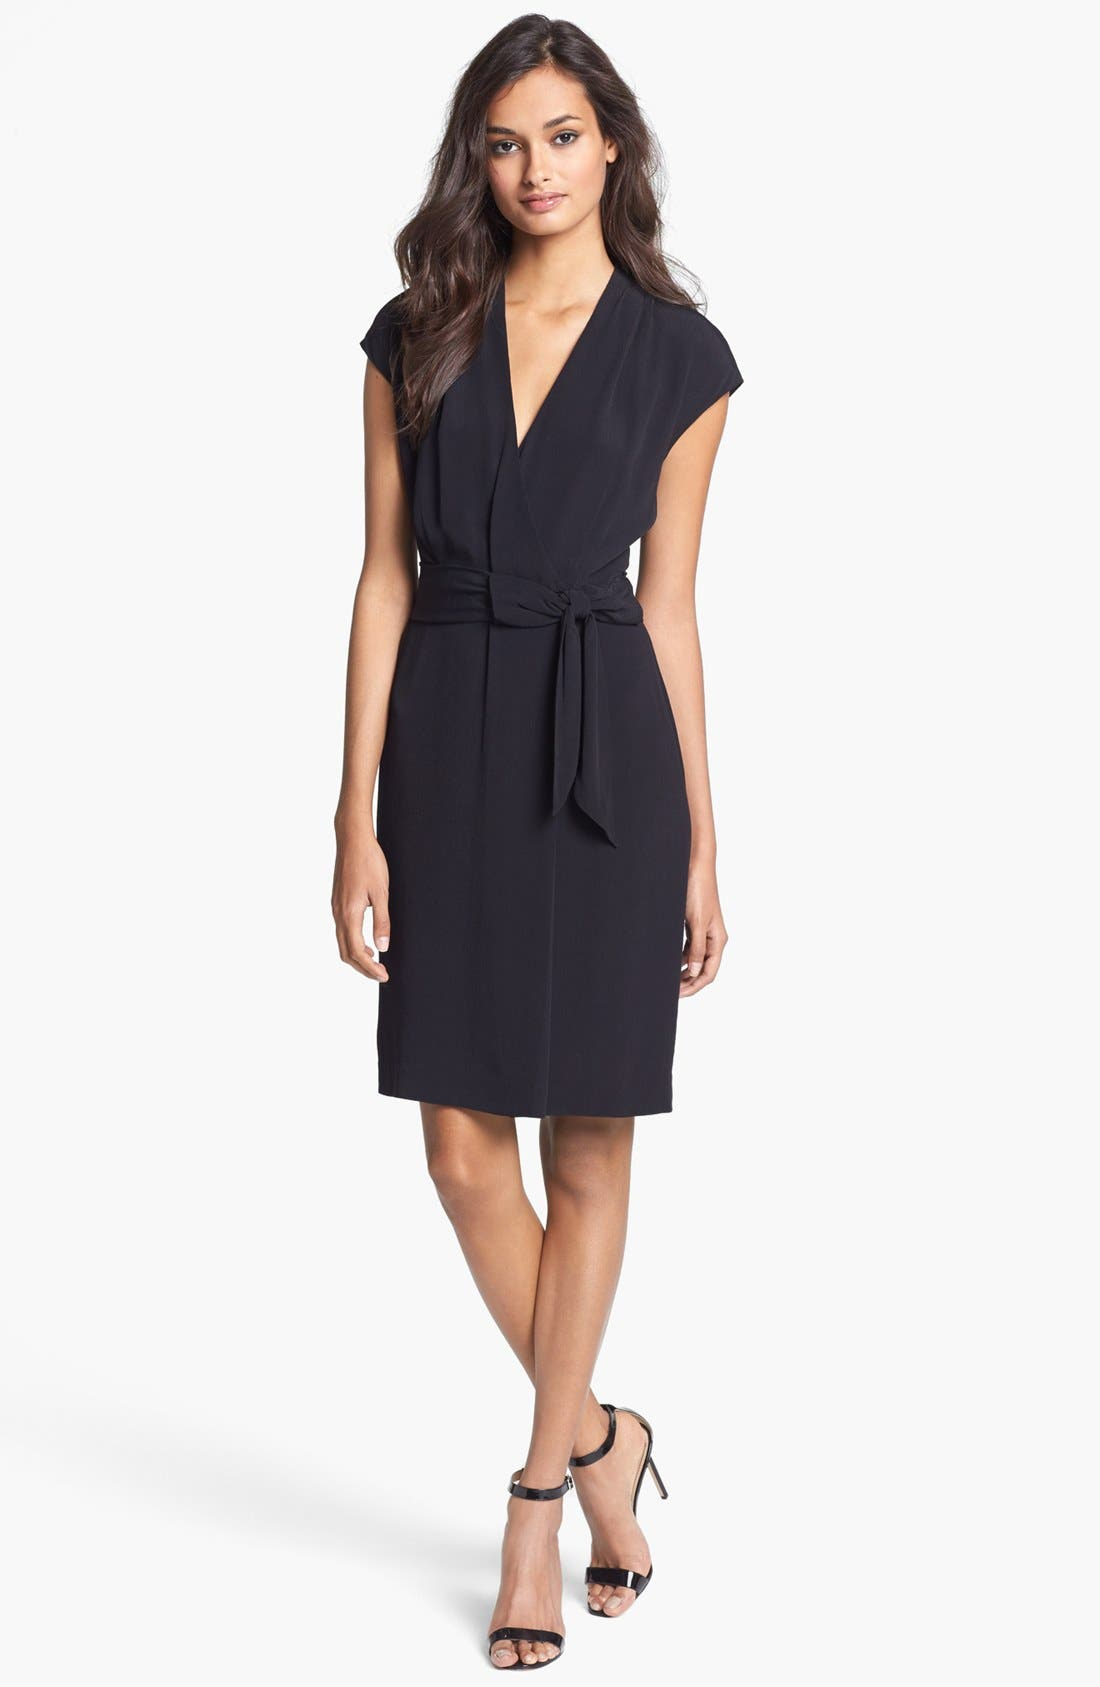 Alternate Image 1 Selected - kate spade new york 'villa' sleeveless dress